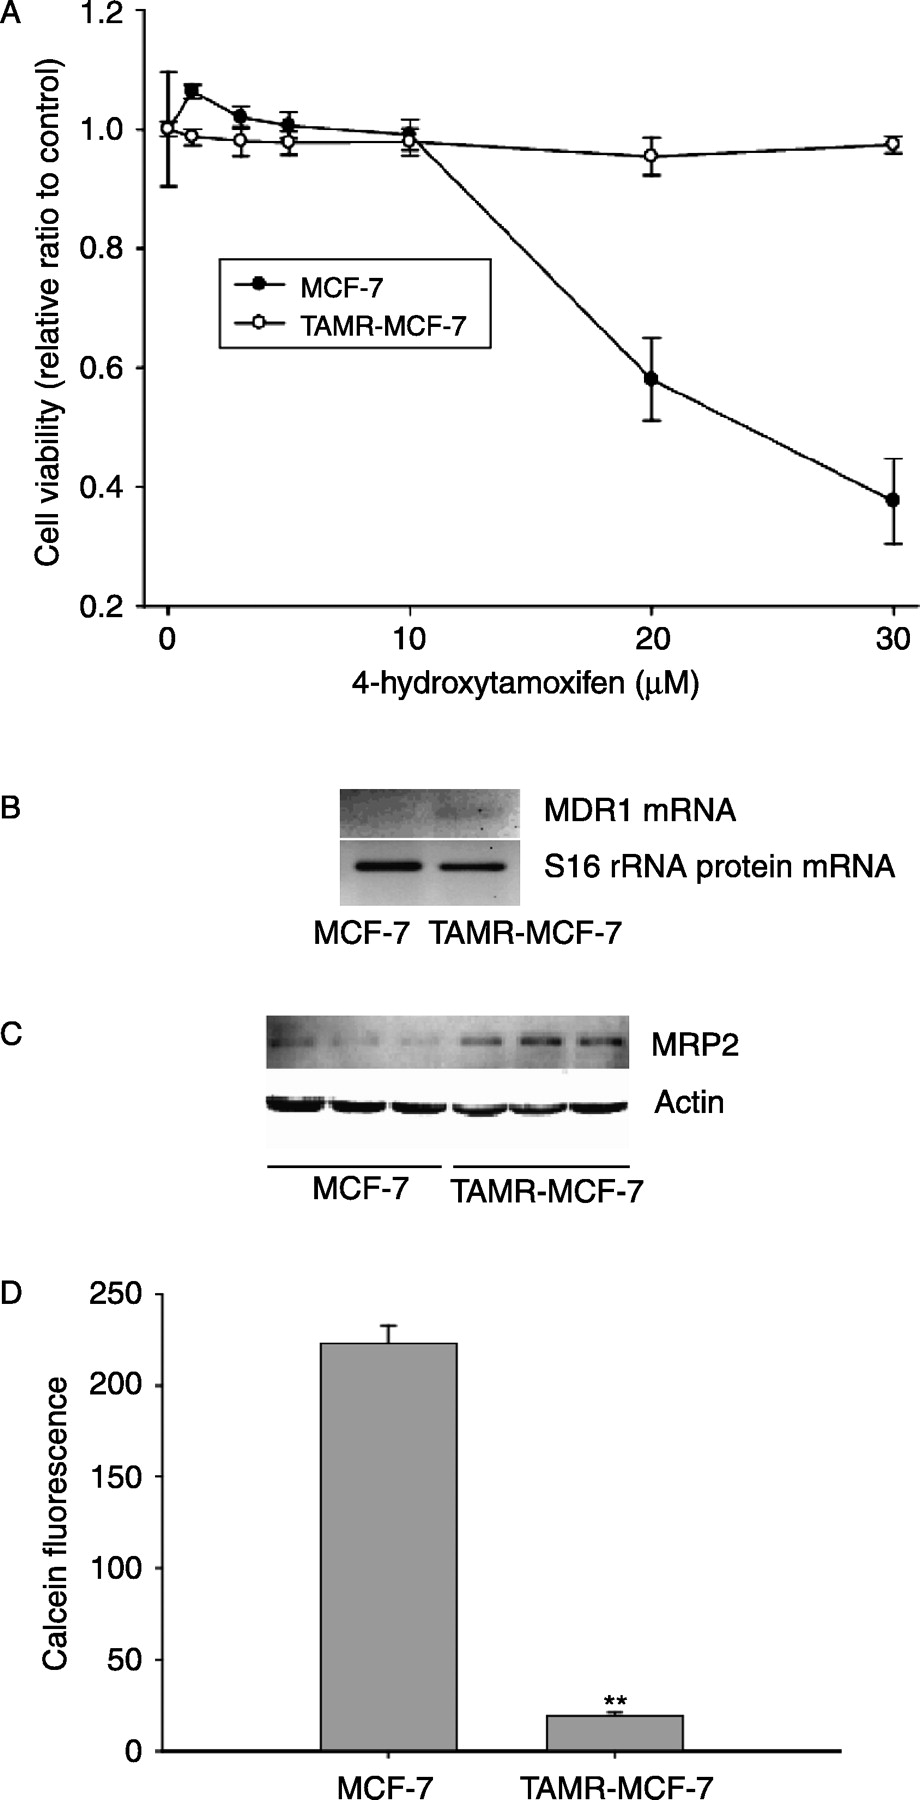 medium resolution of overexpression of mrp2 in tamr mcf 7 cells a cell viability after treating with 4 hydroxytamoxifen after treating mcf 7 and tamr mcf 7 cells with